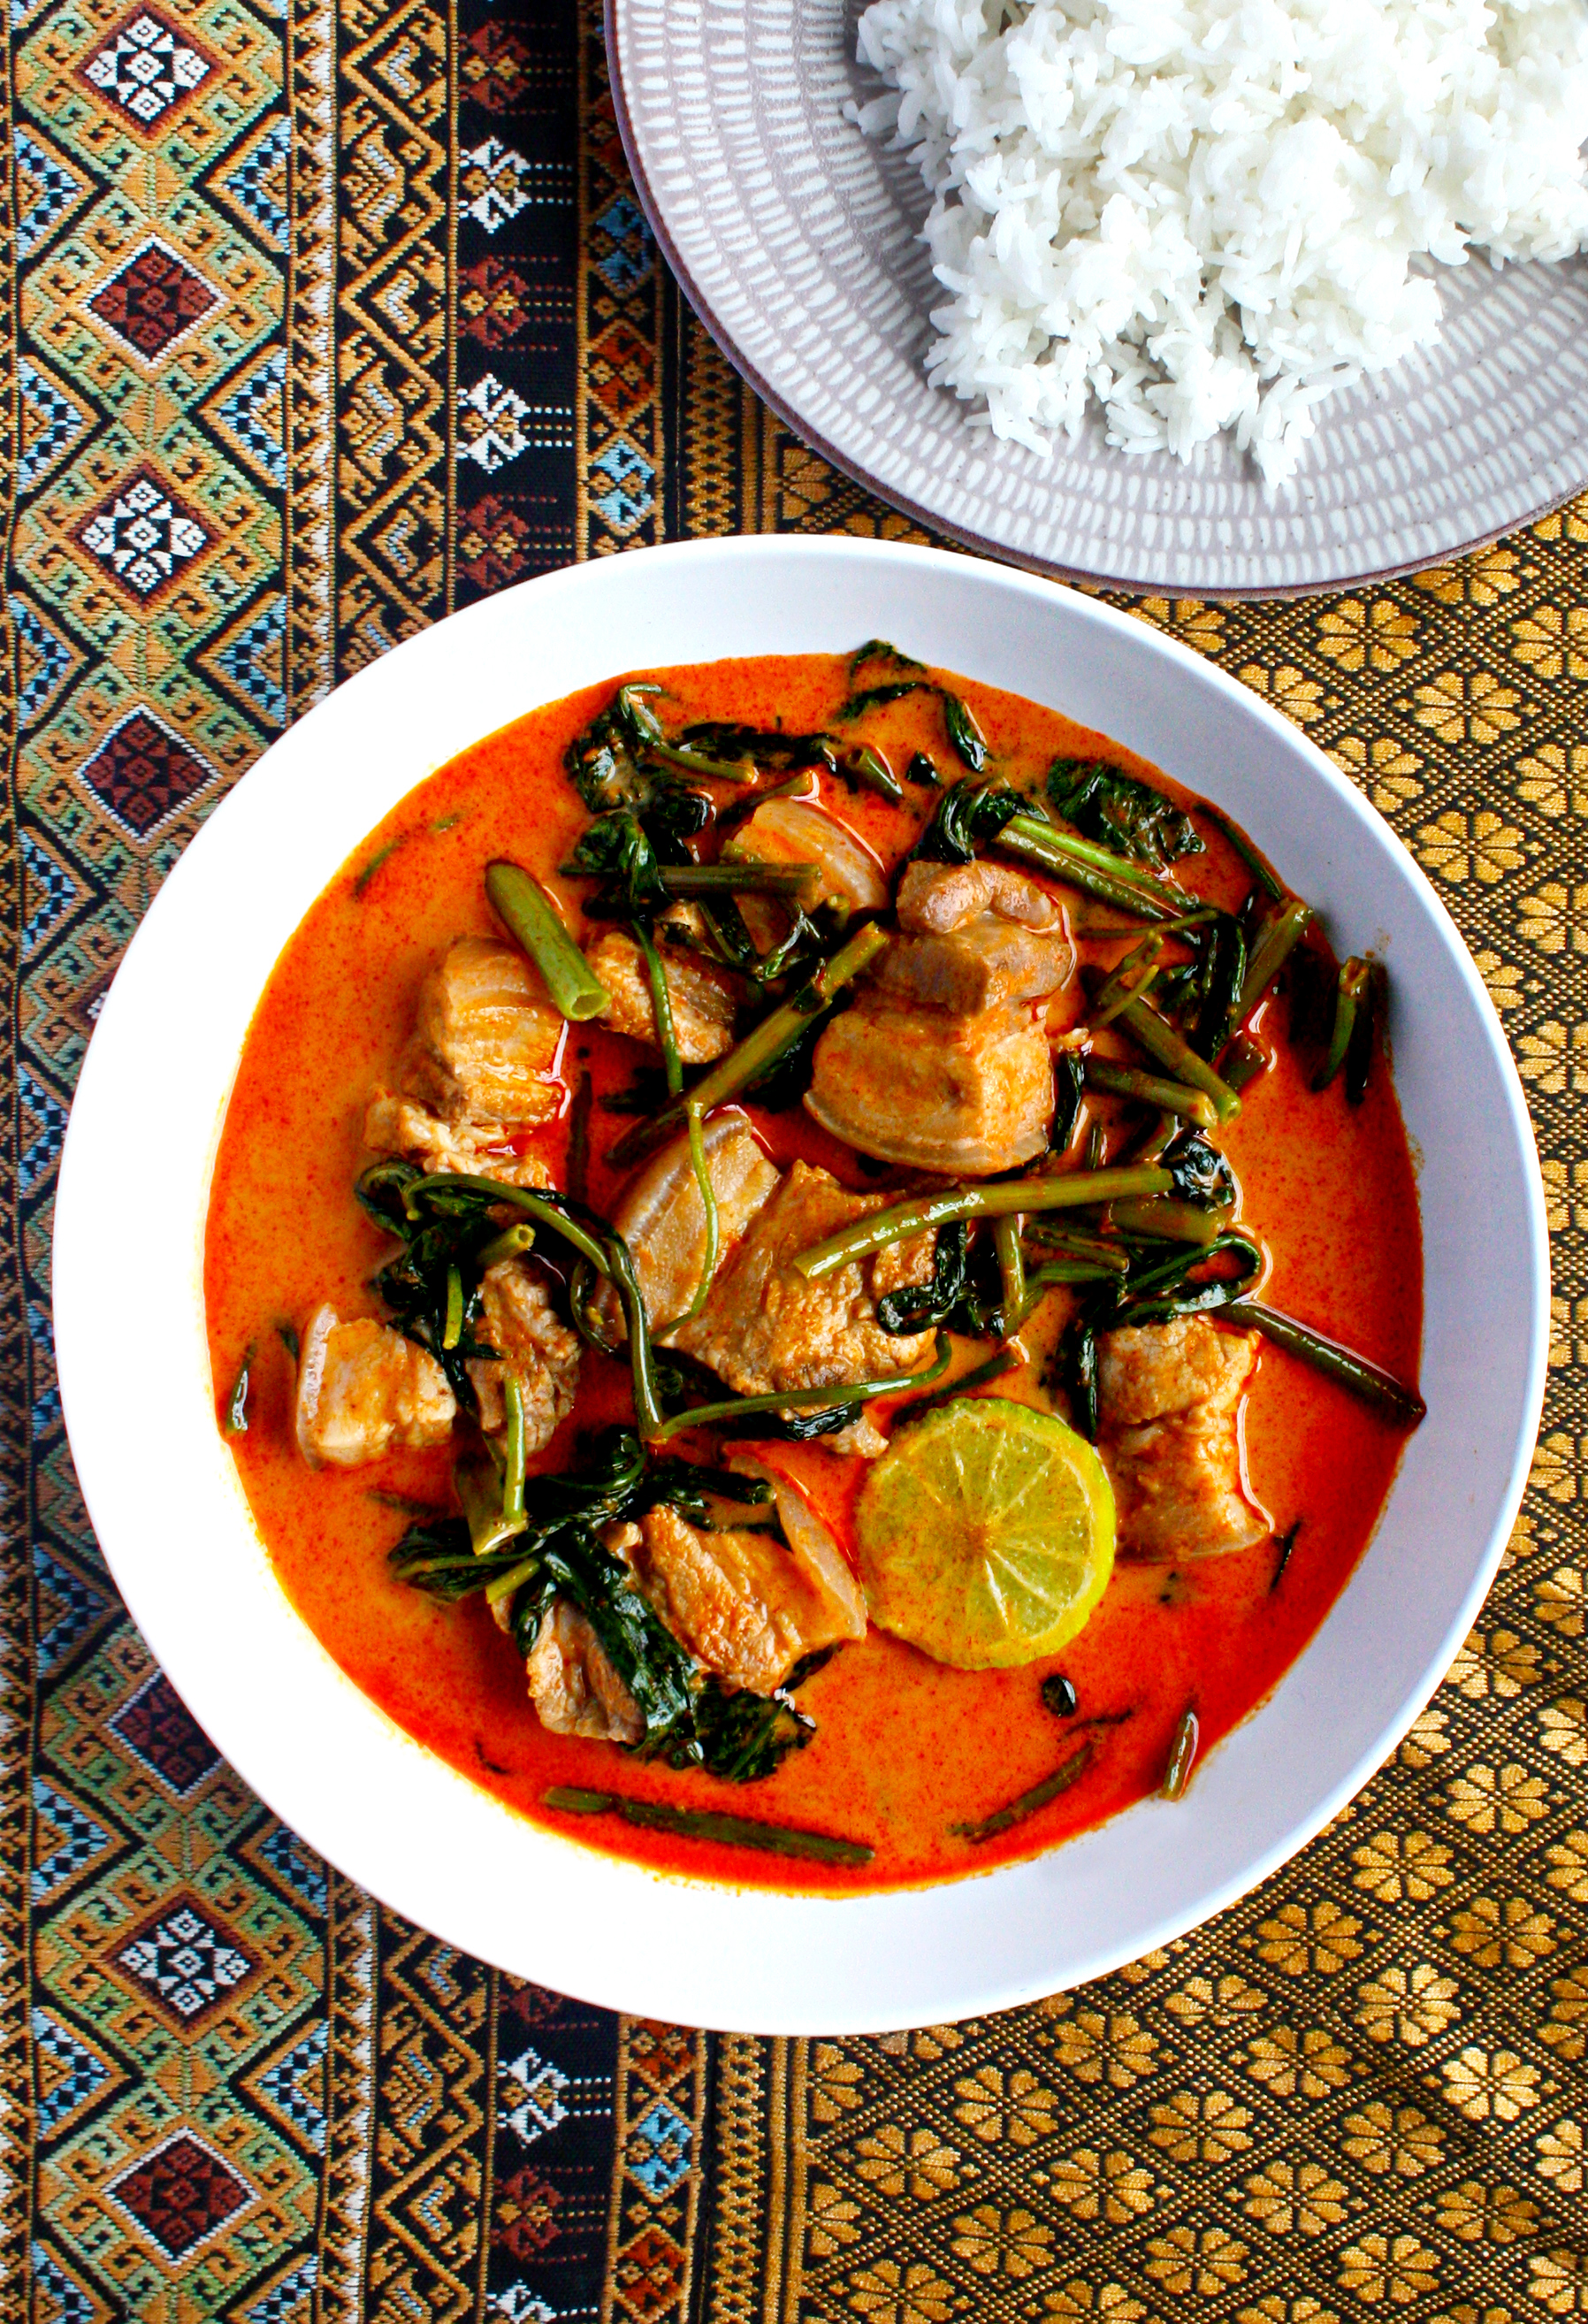 Sweet and Sour Red Curry with Pork Belly from Immm Rice & Beyond in Chicago